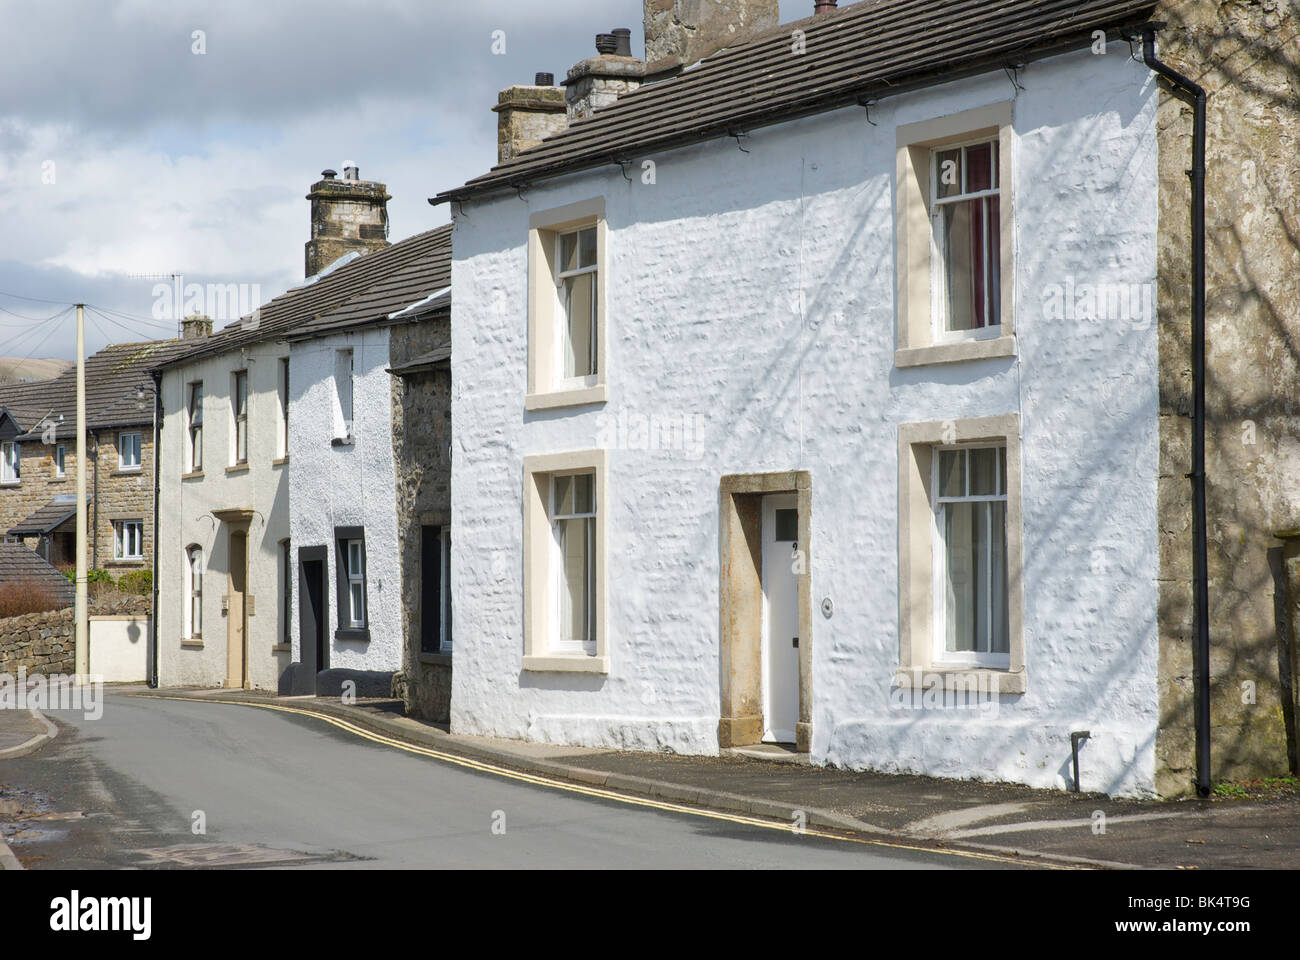 Main Street, in the village of Ingleton, North Yorkshire, England UK - Stock Image